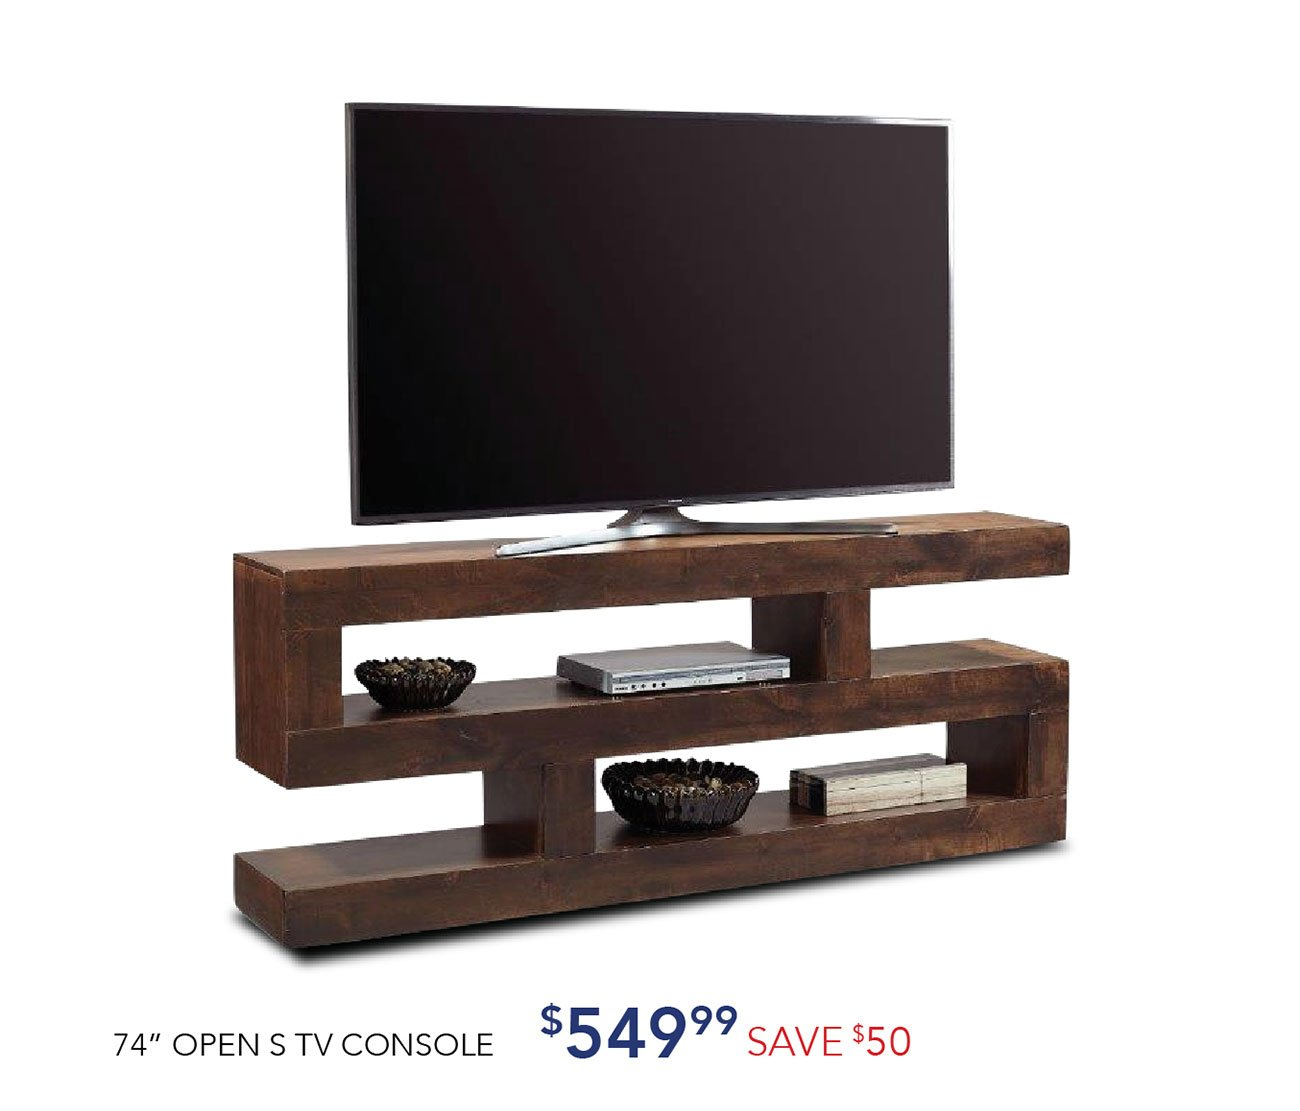 74-inch-open-tv-console